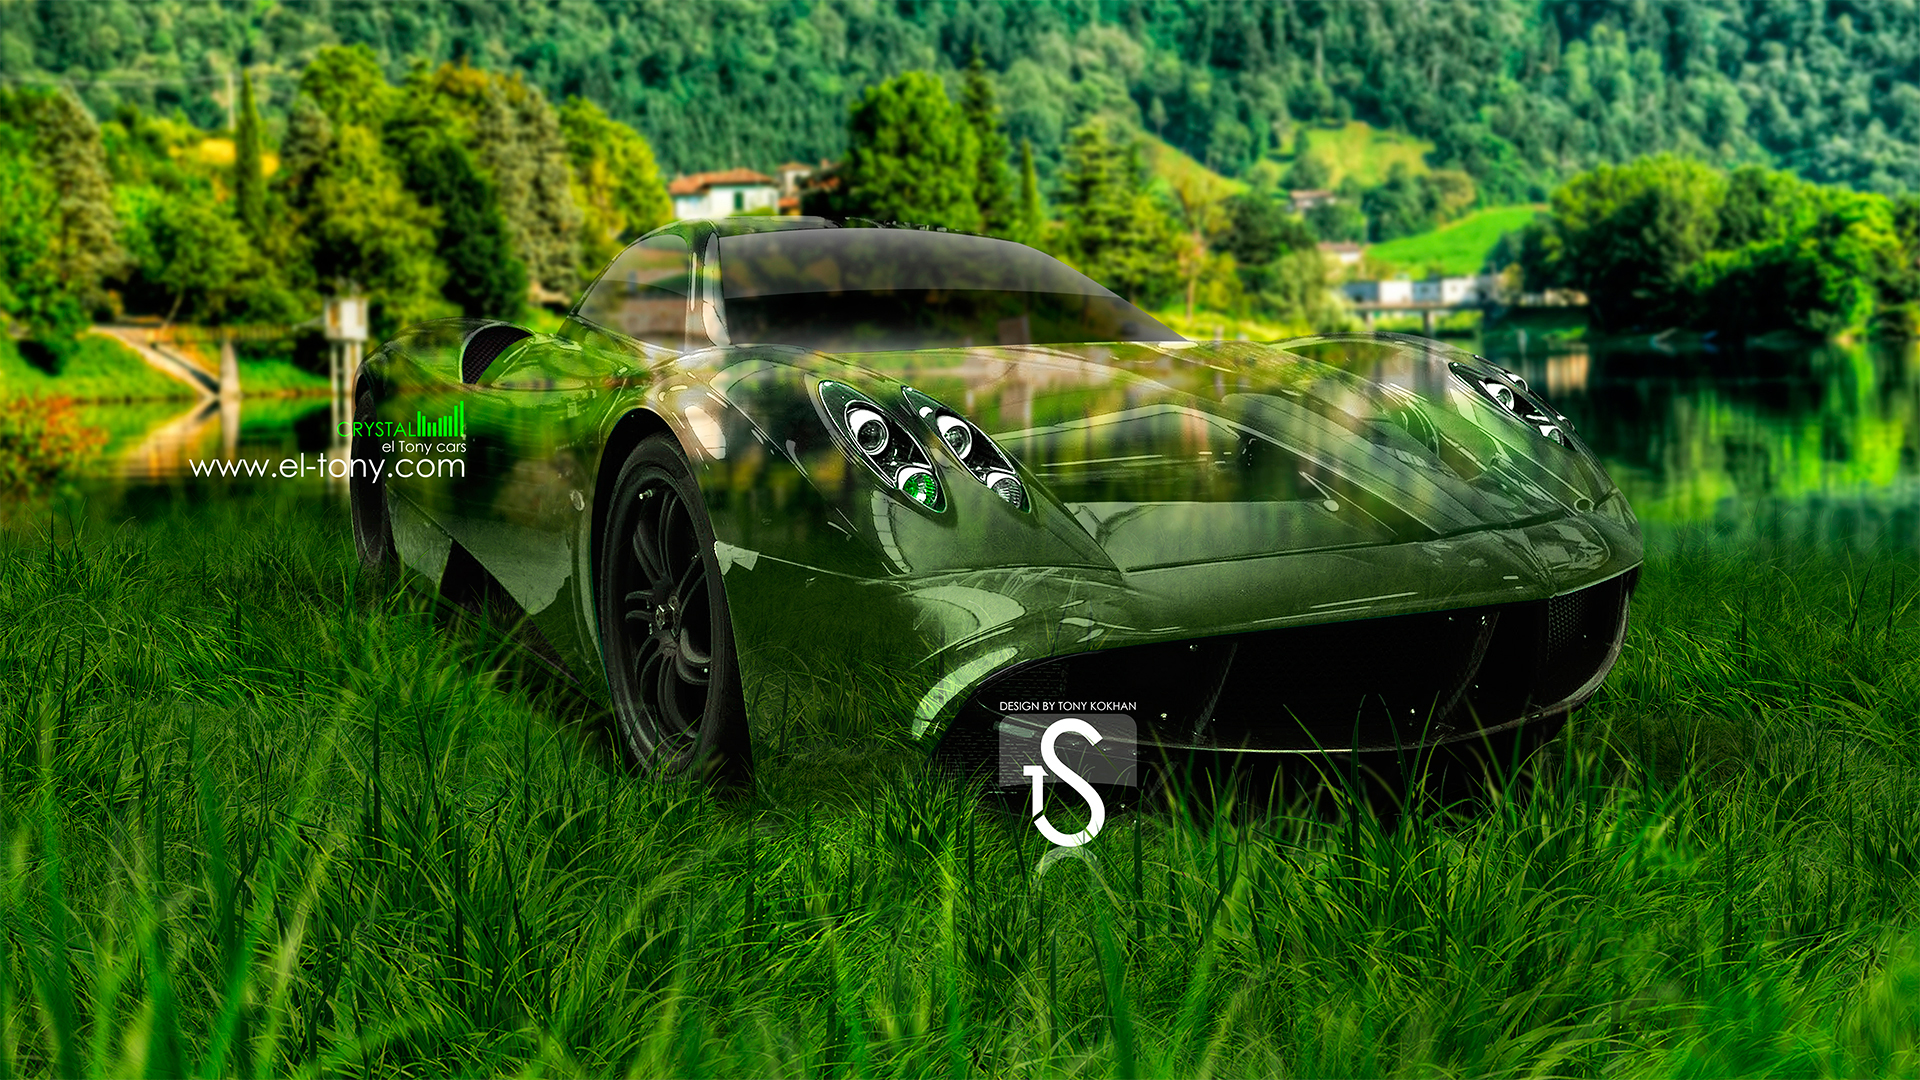 Merveilleux Pagani Huayra Crystal Car 2013 Nature  Green Grass HD Wallpapers Design By Tony Kokhan 1920×1080 [www.el Tony.com]